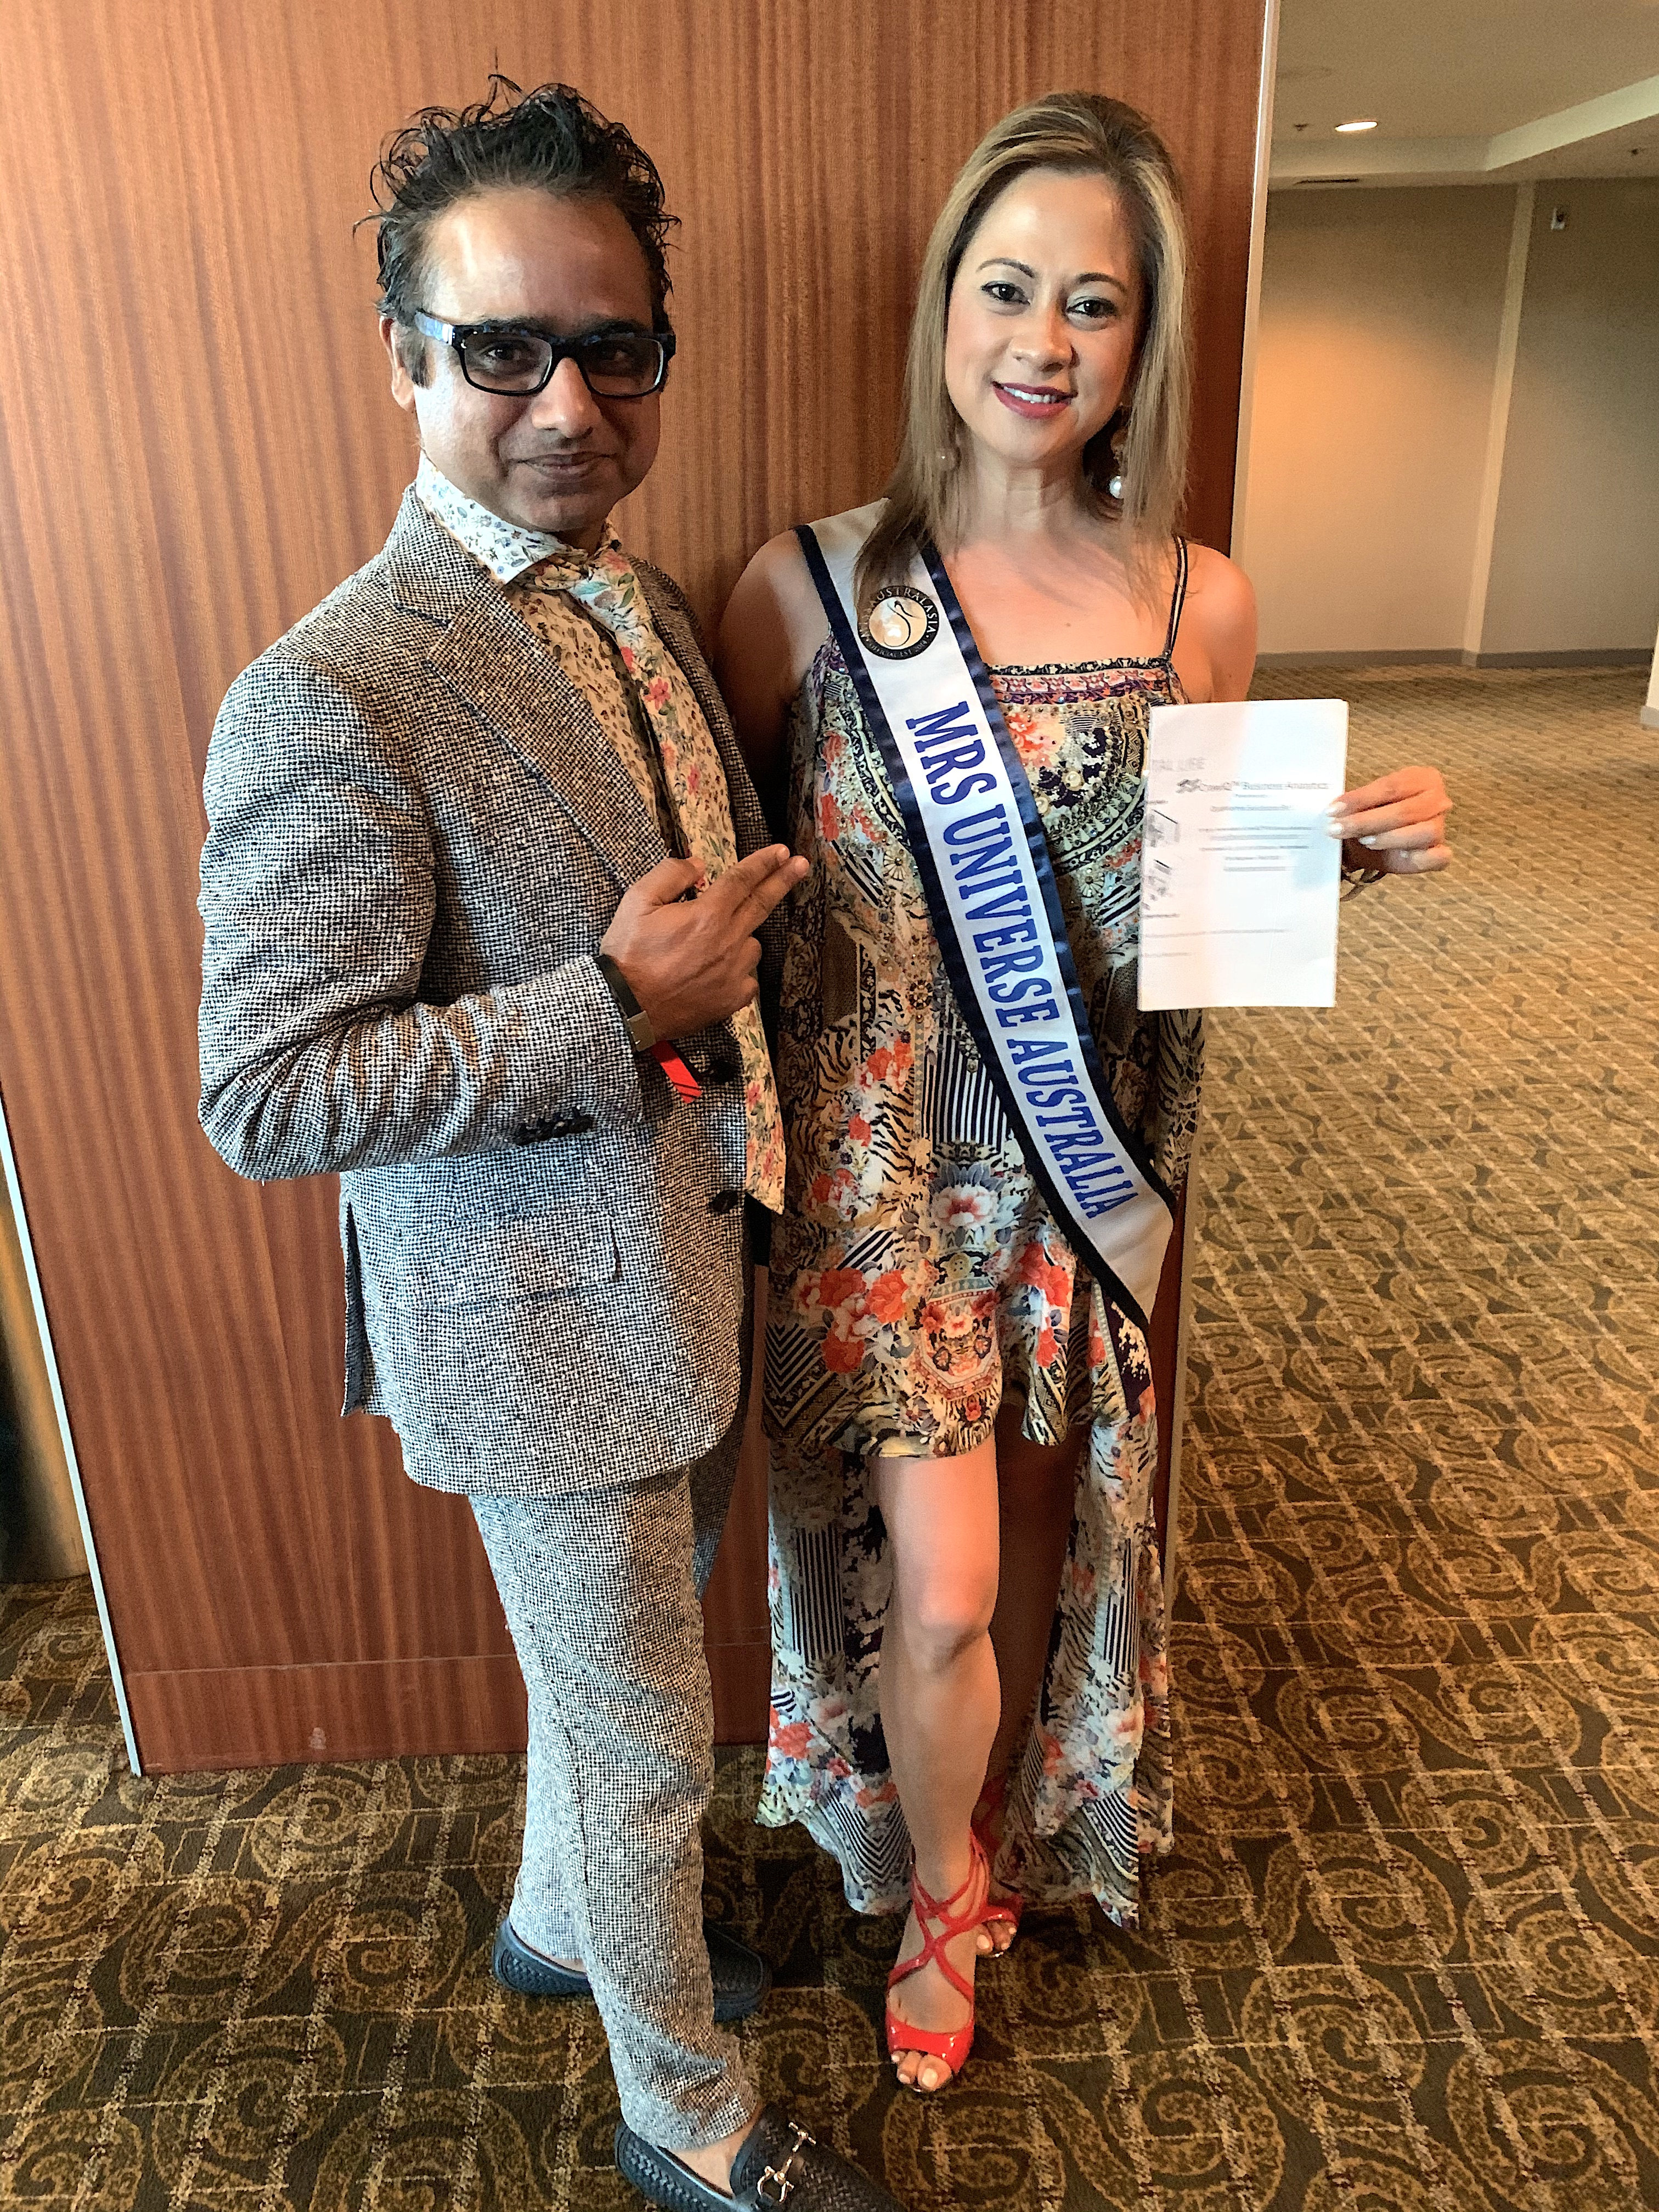 Great Traction at Mega Success JT Foxx Event California USA, Save Celebrity Reputation Mrs Australia Gliselle Santos Ramos